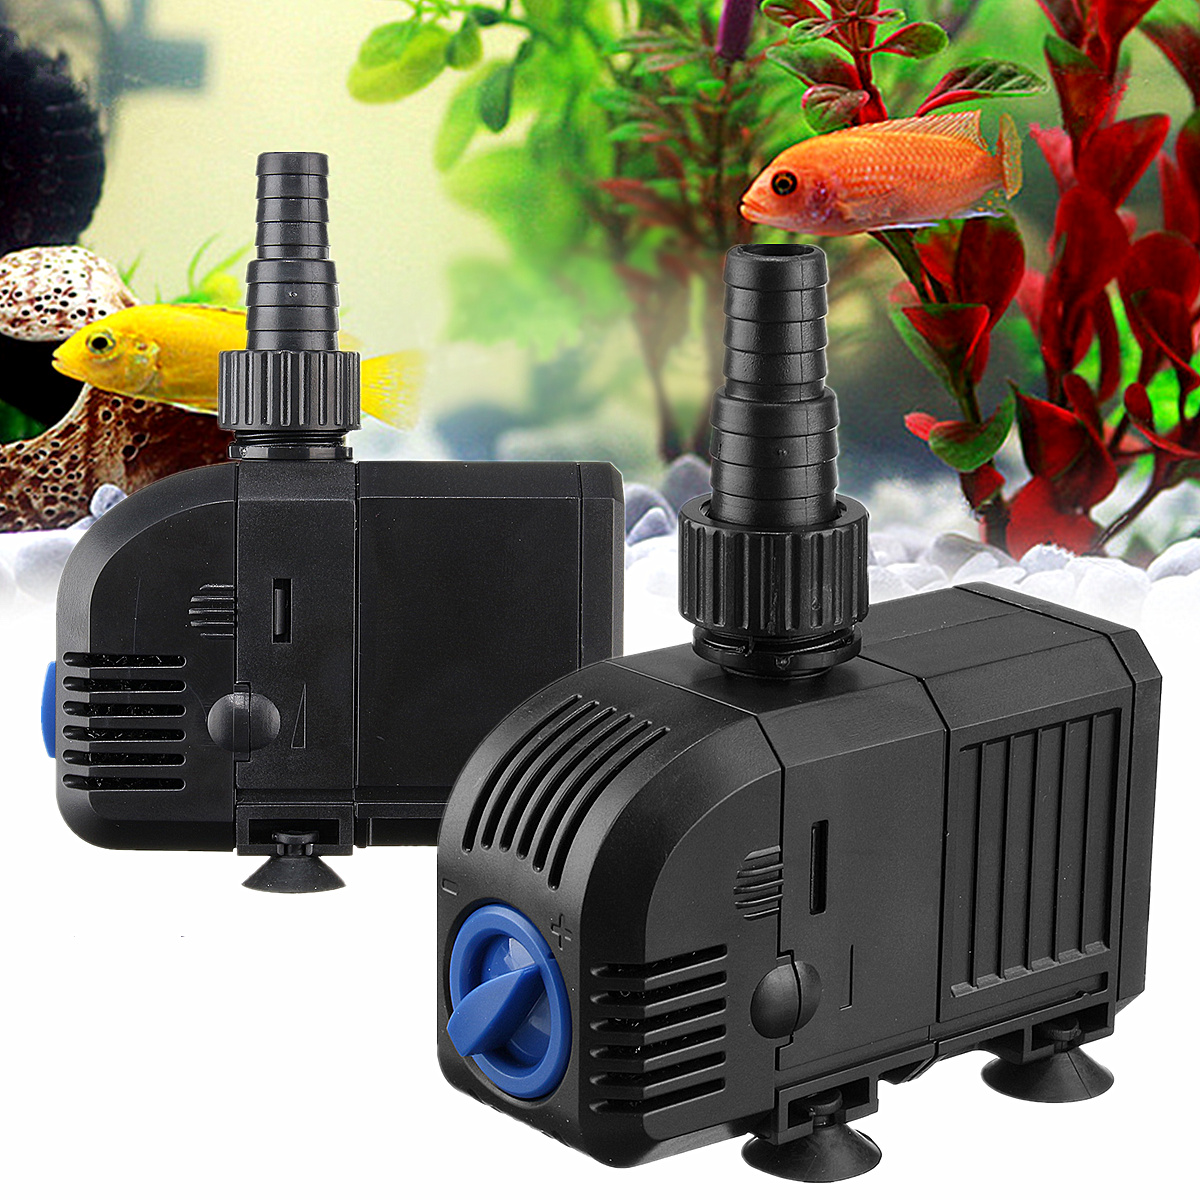 AC 220-240V Adjustable Flow Rate Electric Submersible Water Pump Aquarium Filter Fish Tank Pool Pond Fountain Watering Pumps